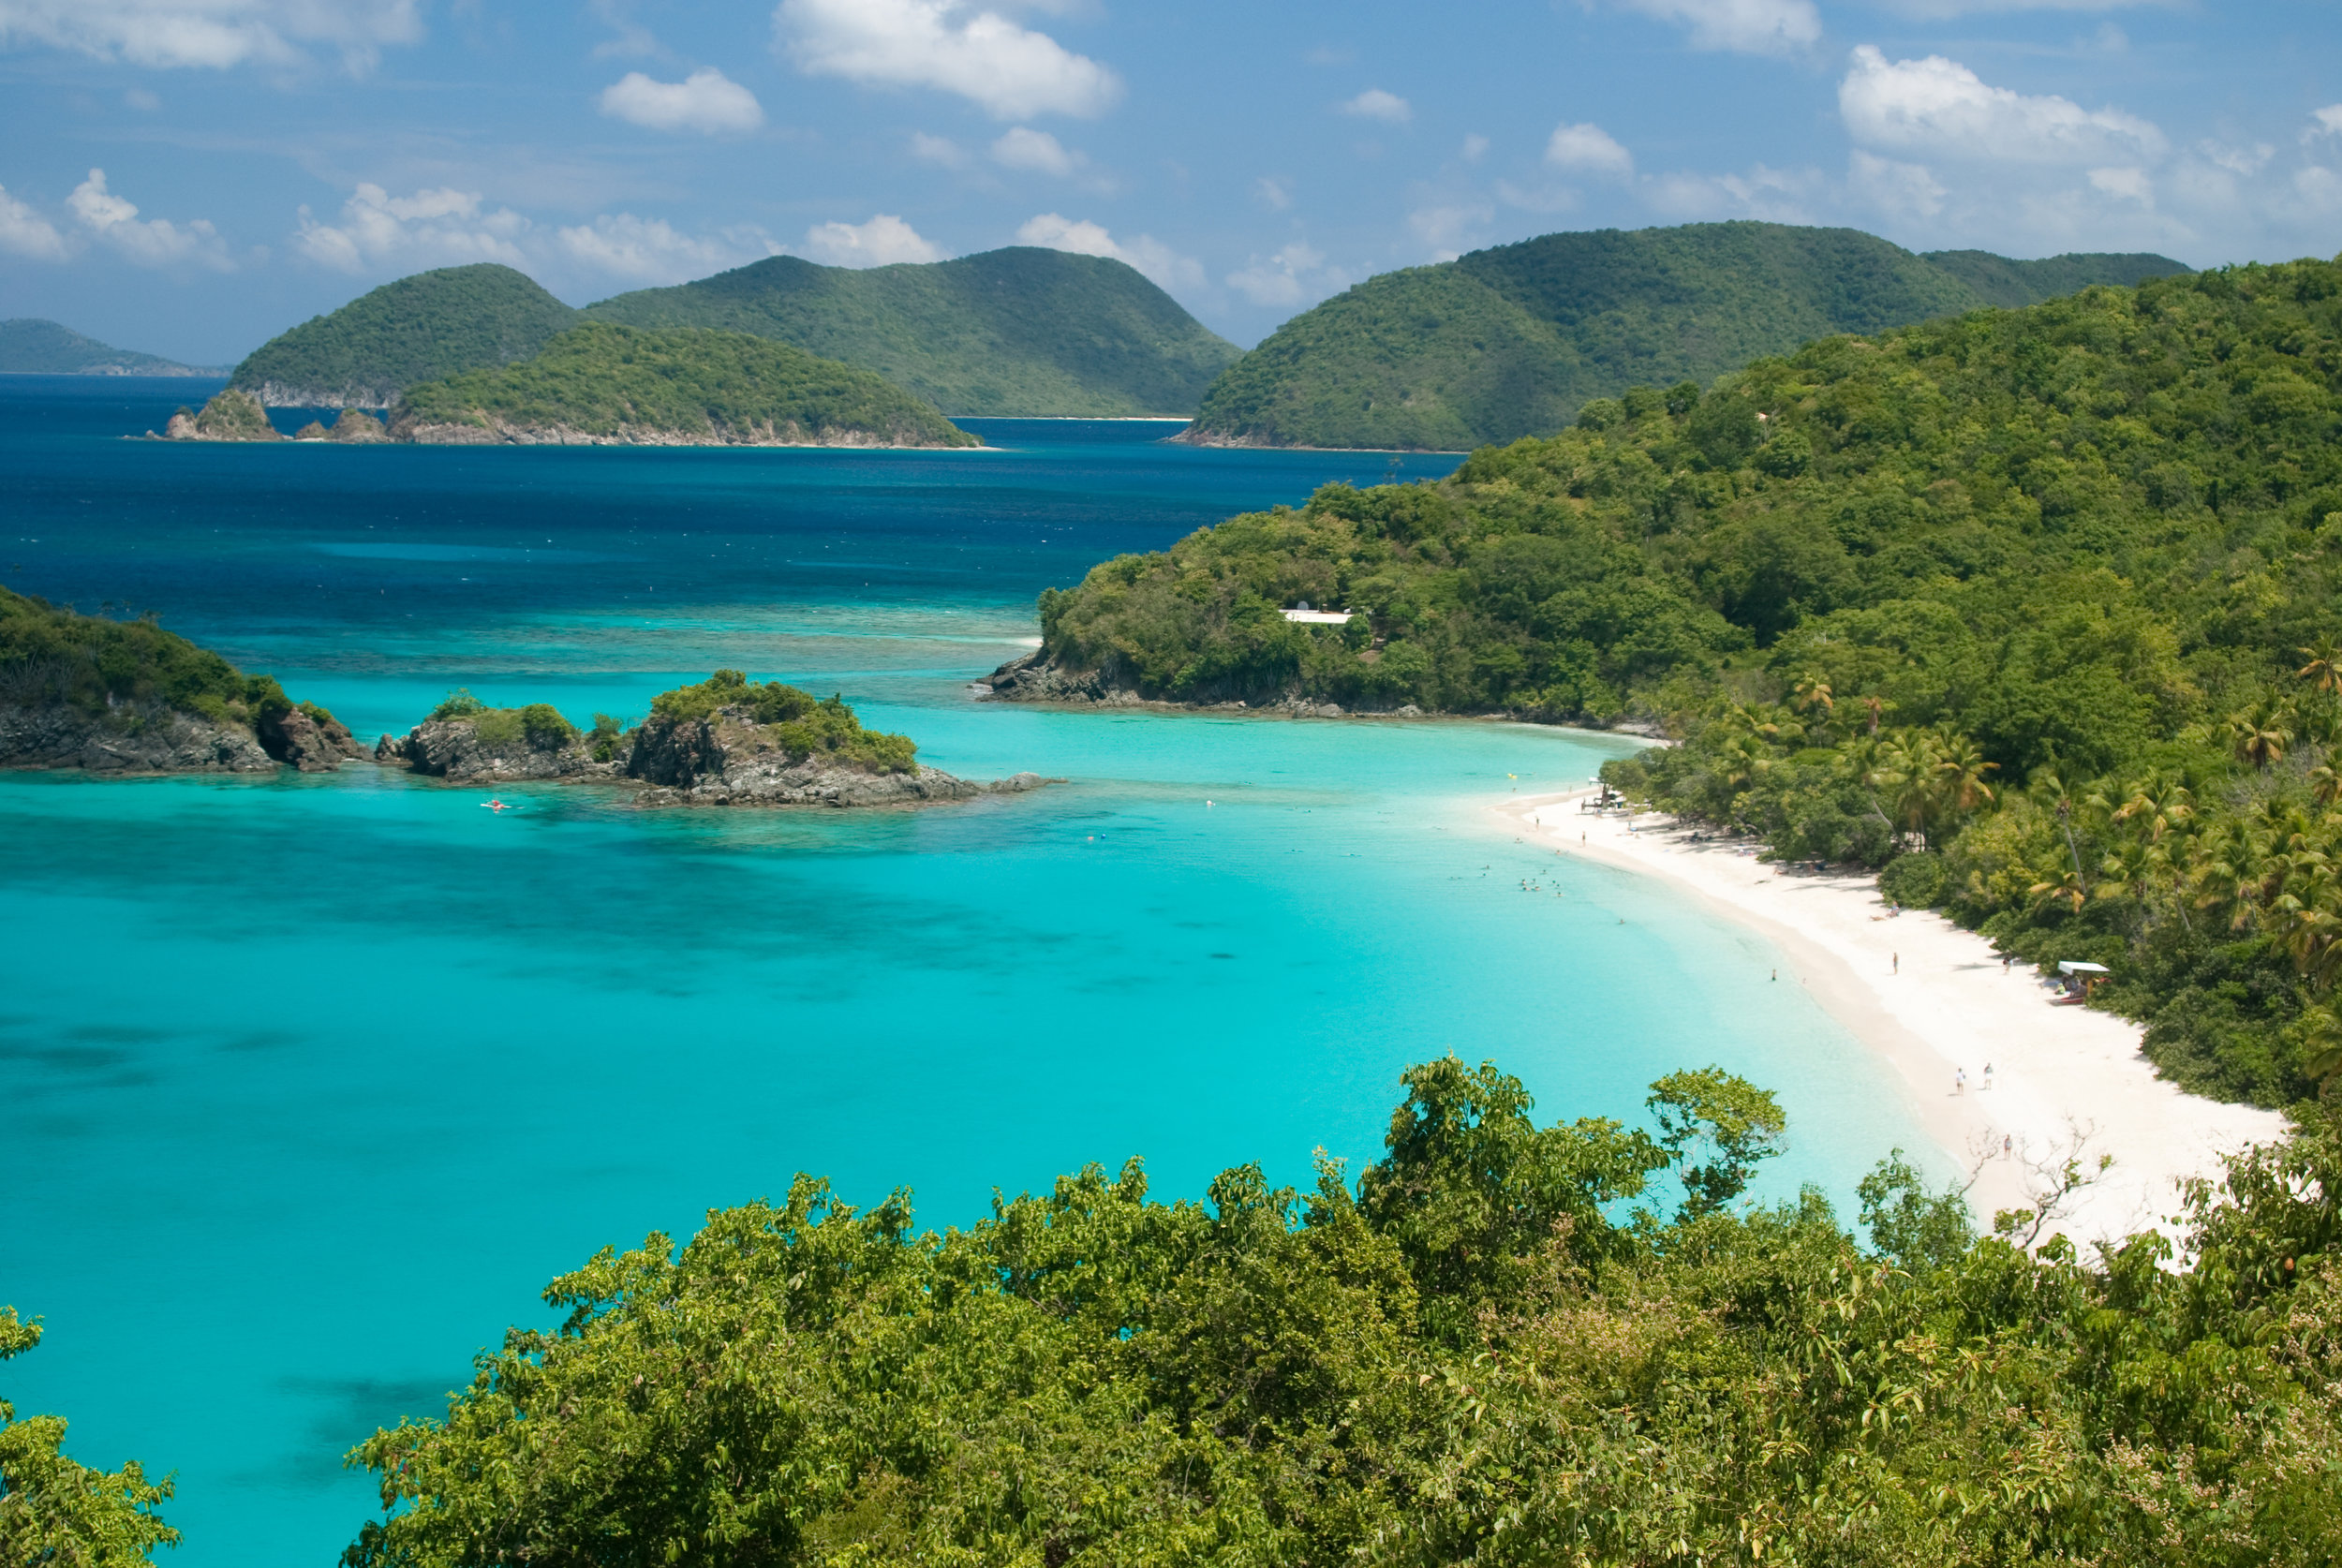 The British Virgin Islands  What better way to ring in the New Year than visiting the British Virgin Islands in January. With the sunny skies as your roof, let the warm breeze serenade you while you sip margaritas on the beach and get a killer tan.